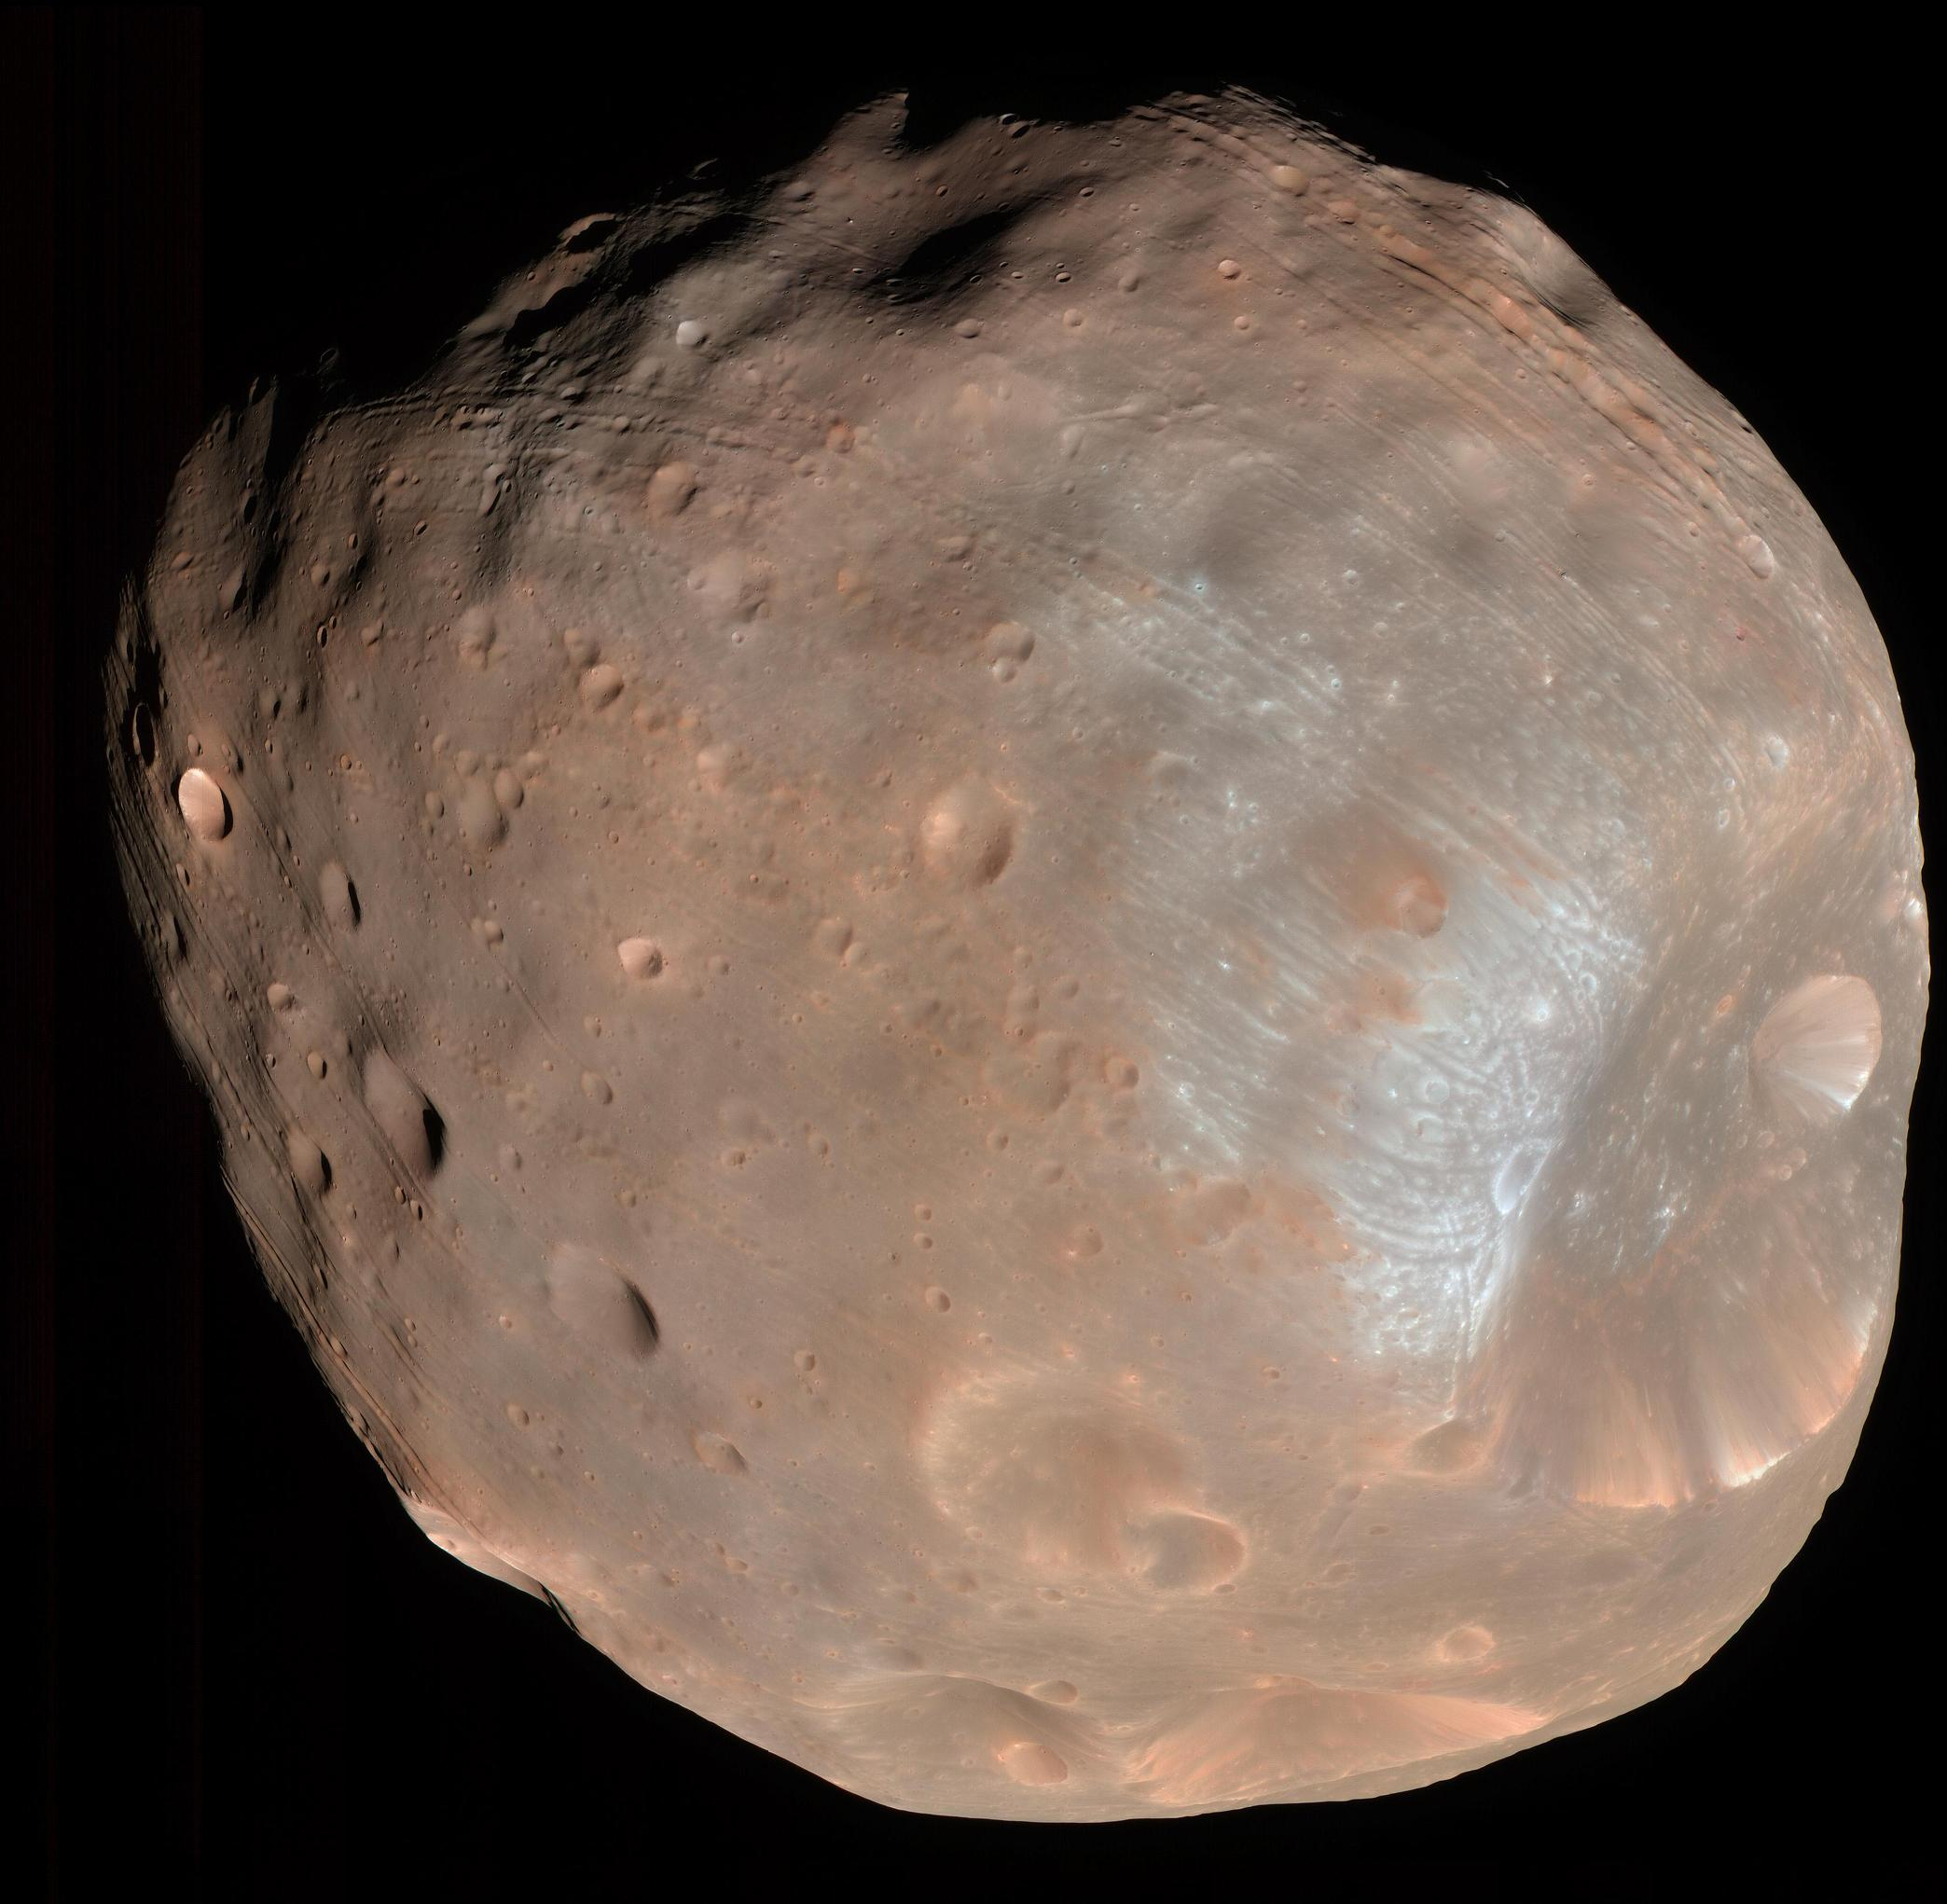 This is a color image of the largest of Mars' two moons, Phobos.  It appears pinkish in color with a giant crater dent on the far, right-side.  The crater edges seem whiter than the rest of the image.